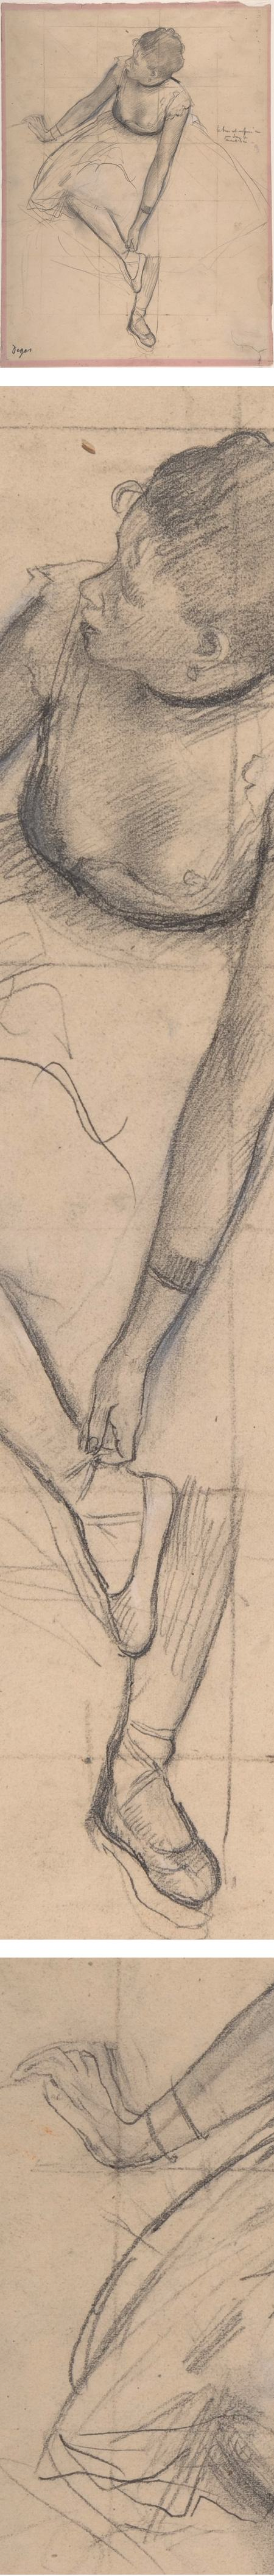 Dancer Adjusting her Slipper, Edgar Degas, pencil drawing